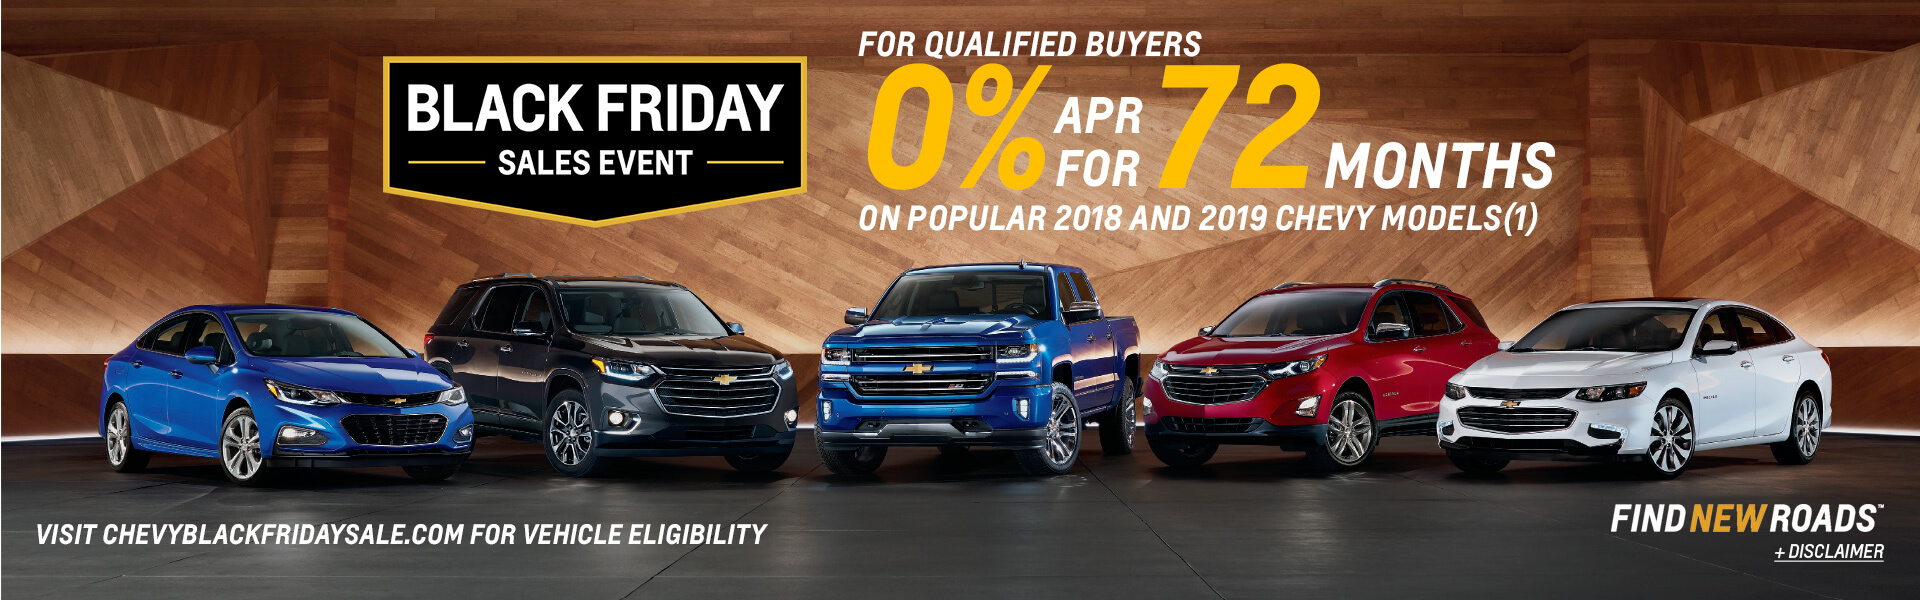 Chevy 0% for 72